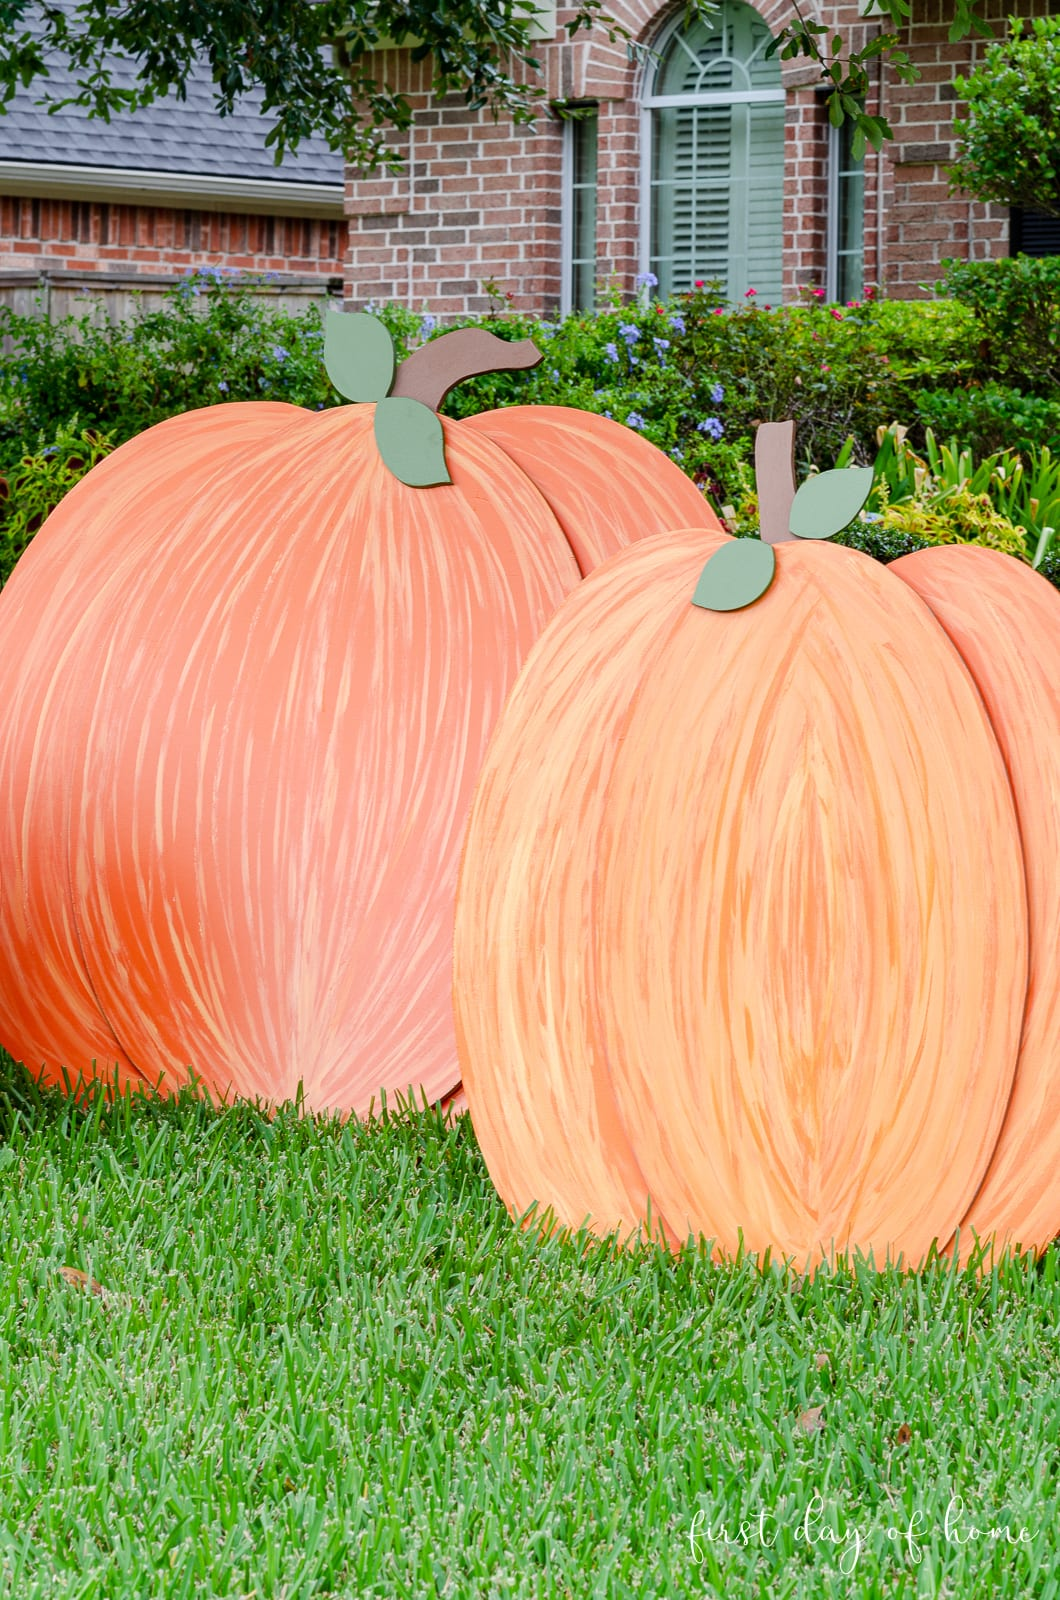 Orange painted wooden pumpkin yard decorations up close